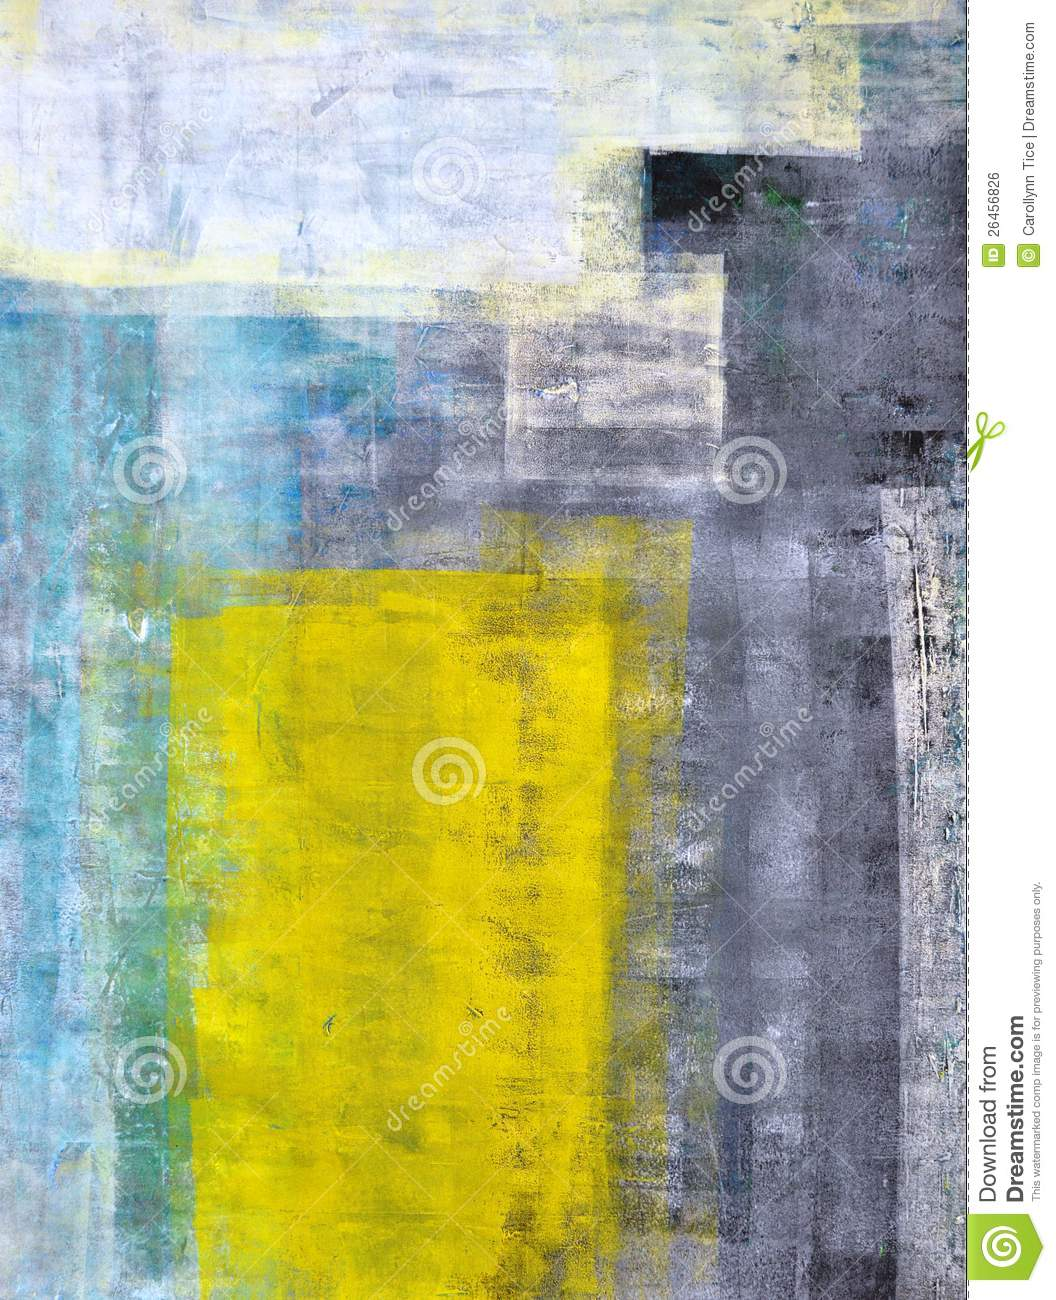 Teal grey and yellow abstract art painting royalty free stock